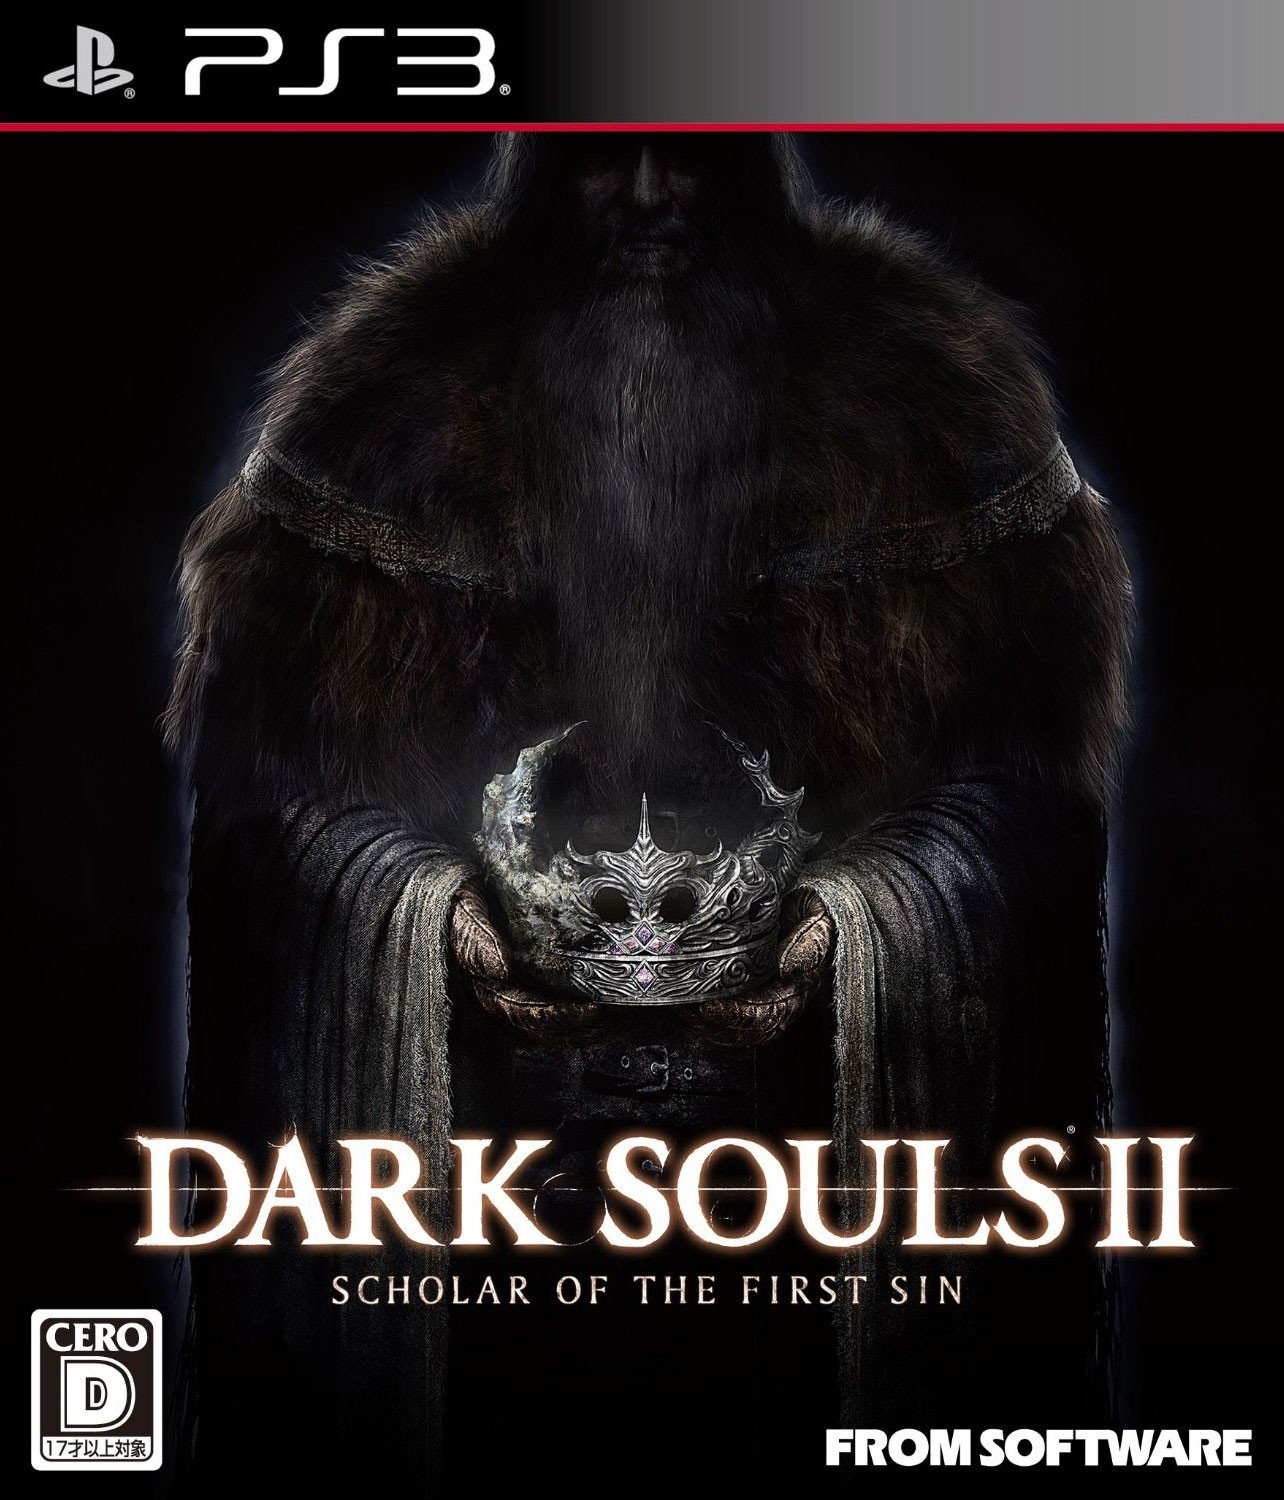 DARK SOULS II: SCHOLAR OF THE FIRST SIN 黑暗之魂2:原罪学者